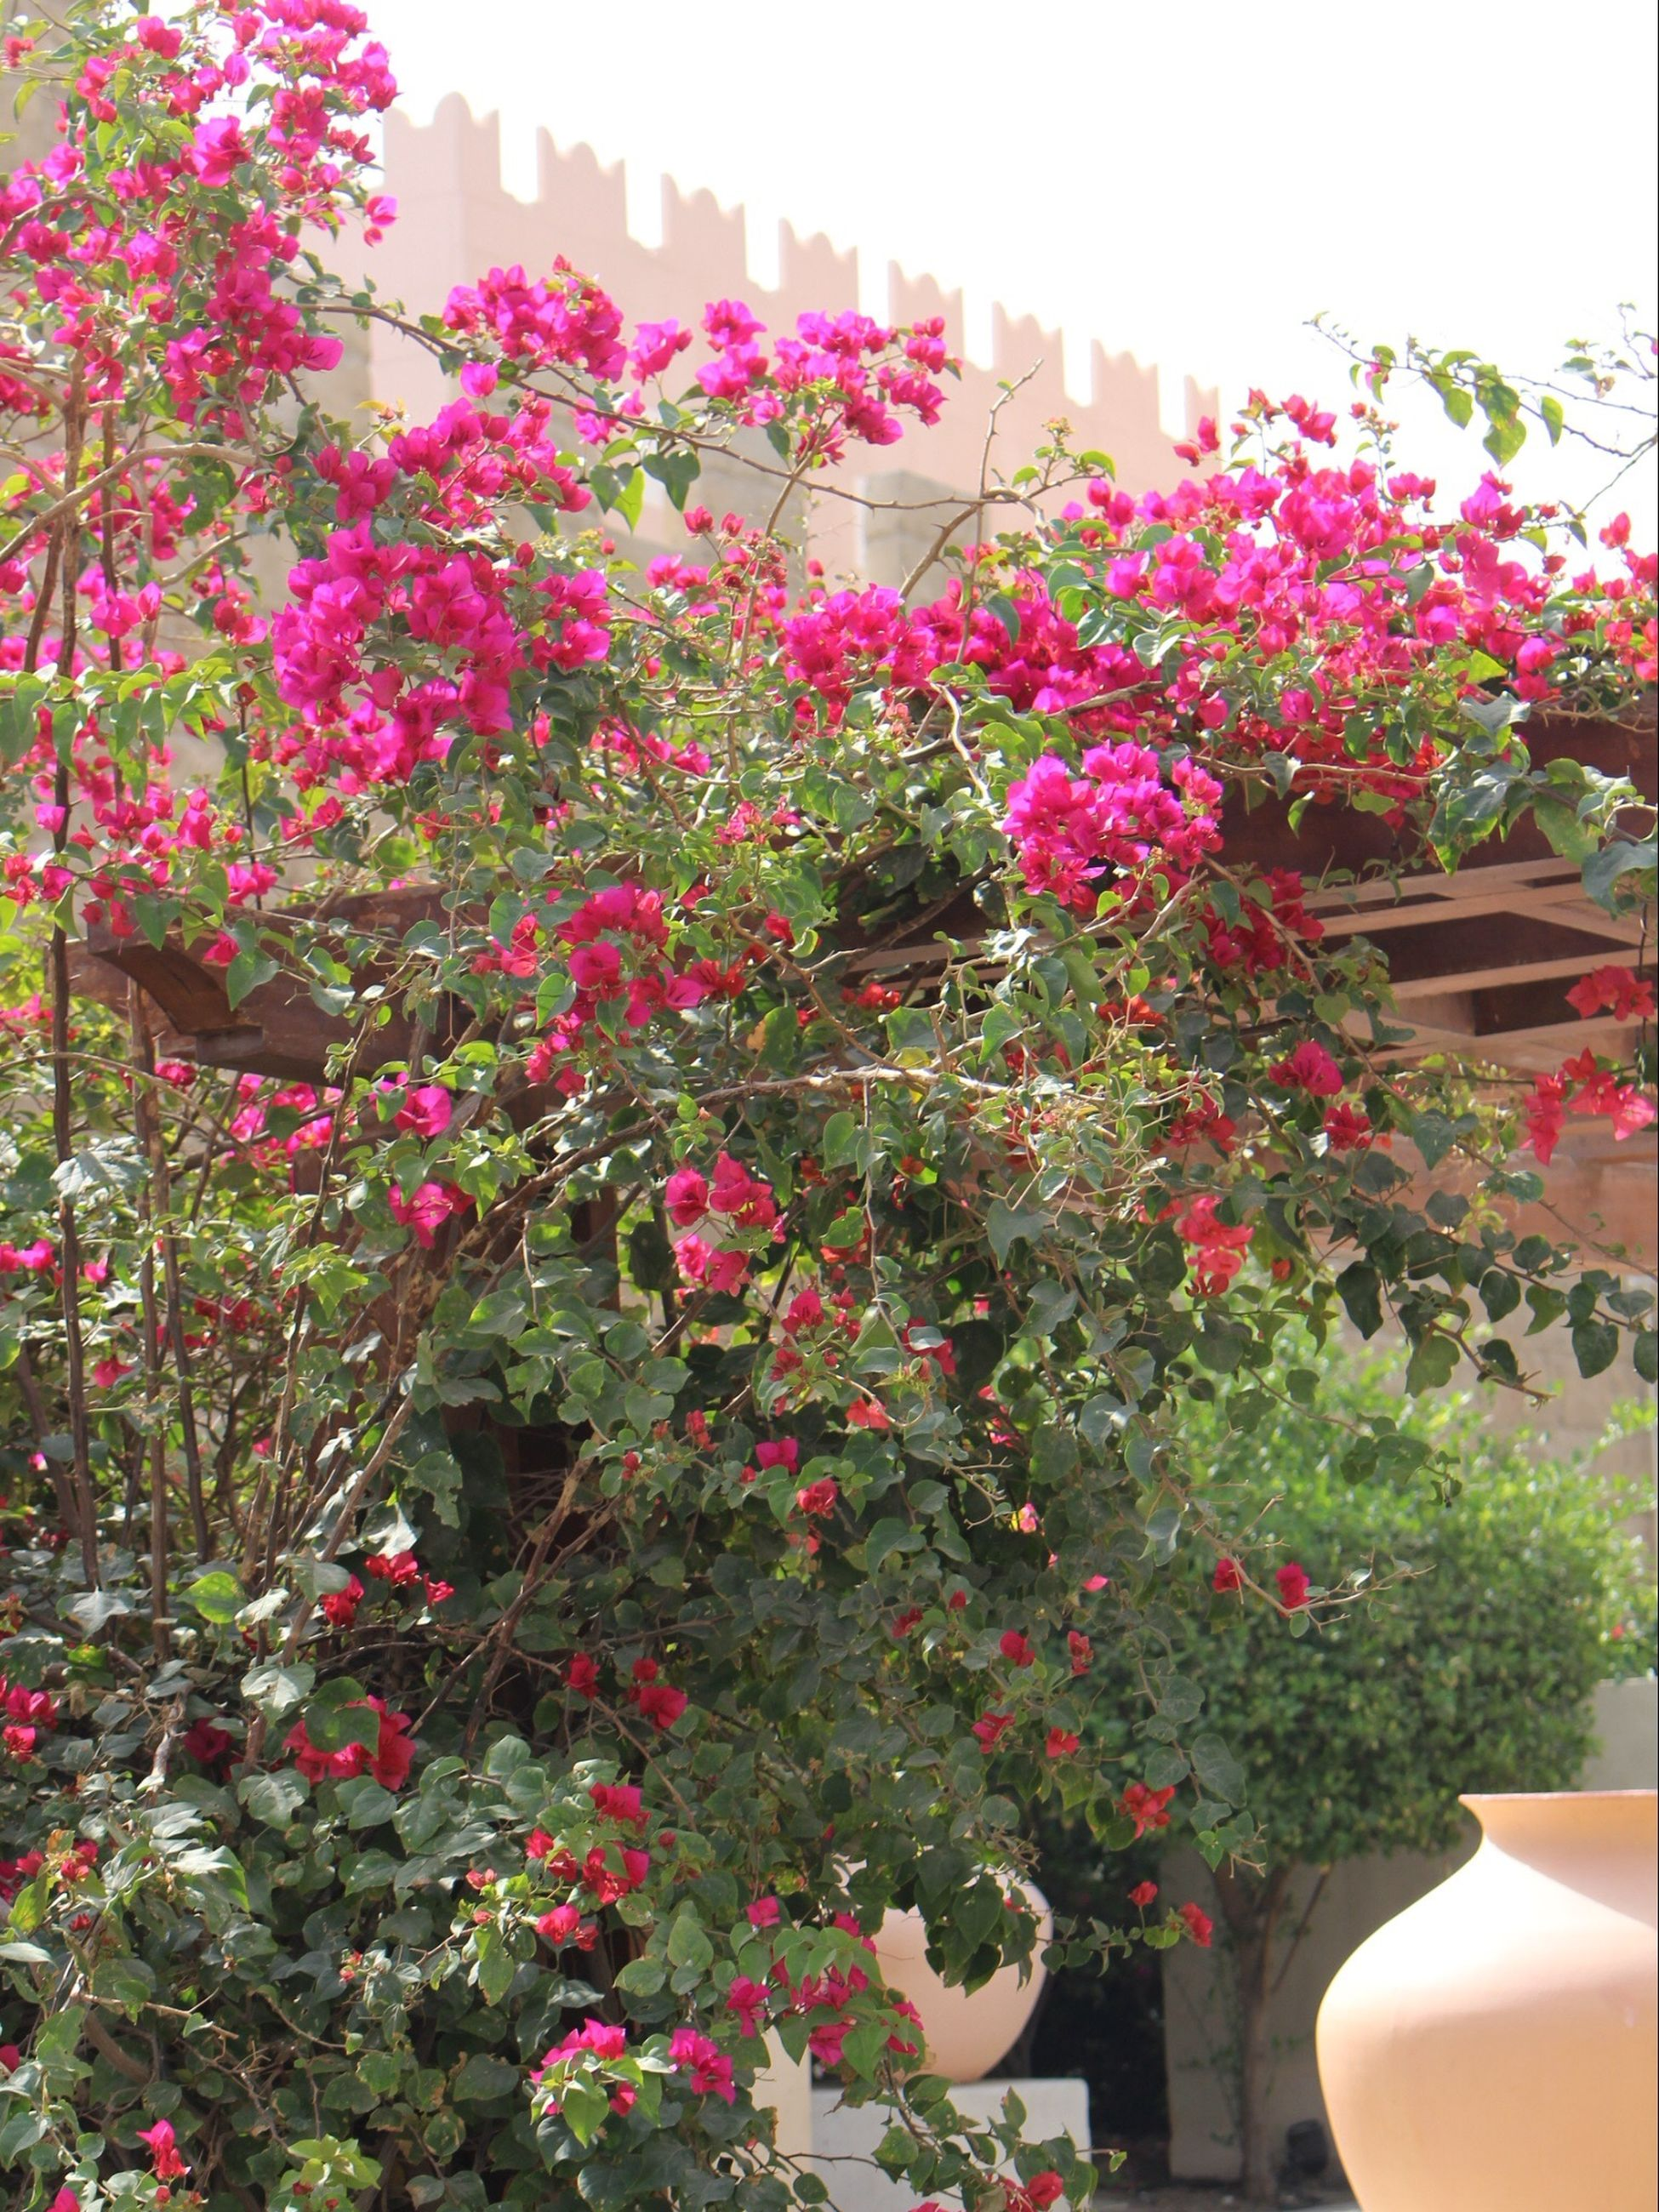 flower, growth, freshness, pink color, fragility, plant, built structure, architecture, building exterior, low angle view, beauty in nature, nature, tree, blooming, petal, in bloom, clear sky, potted plant, day, blossom